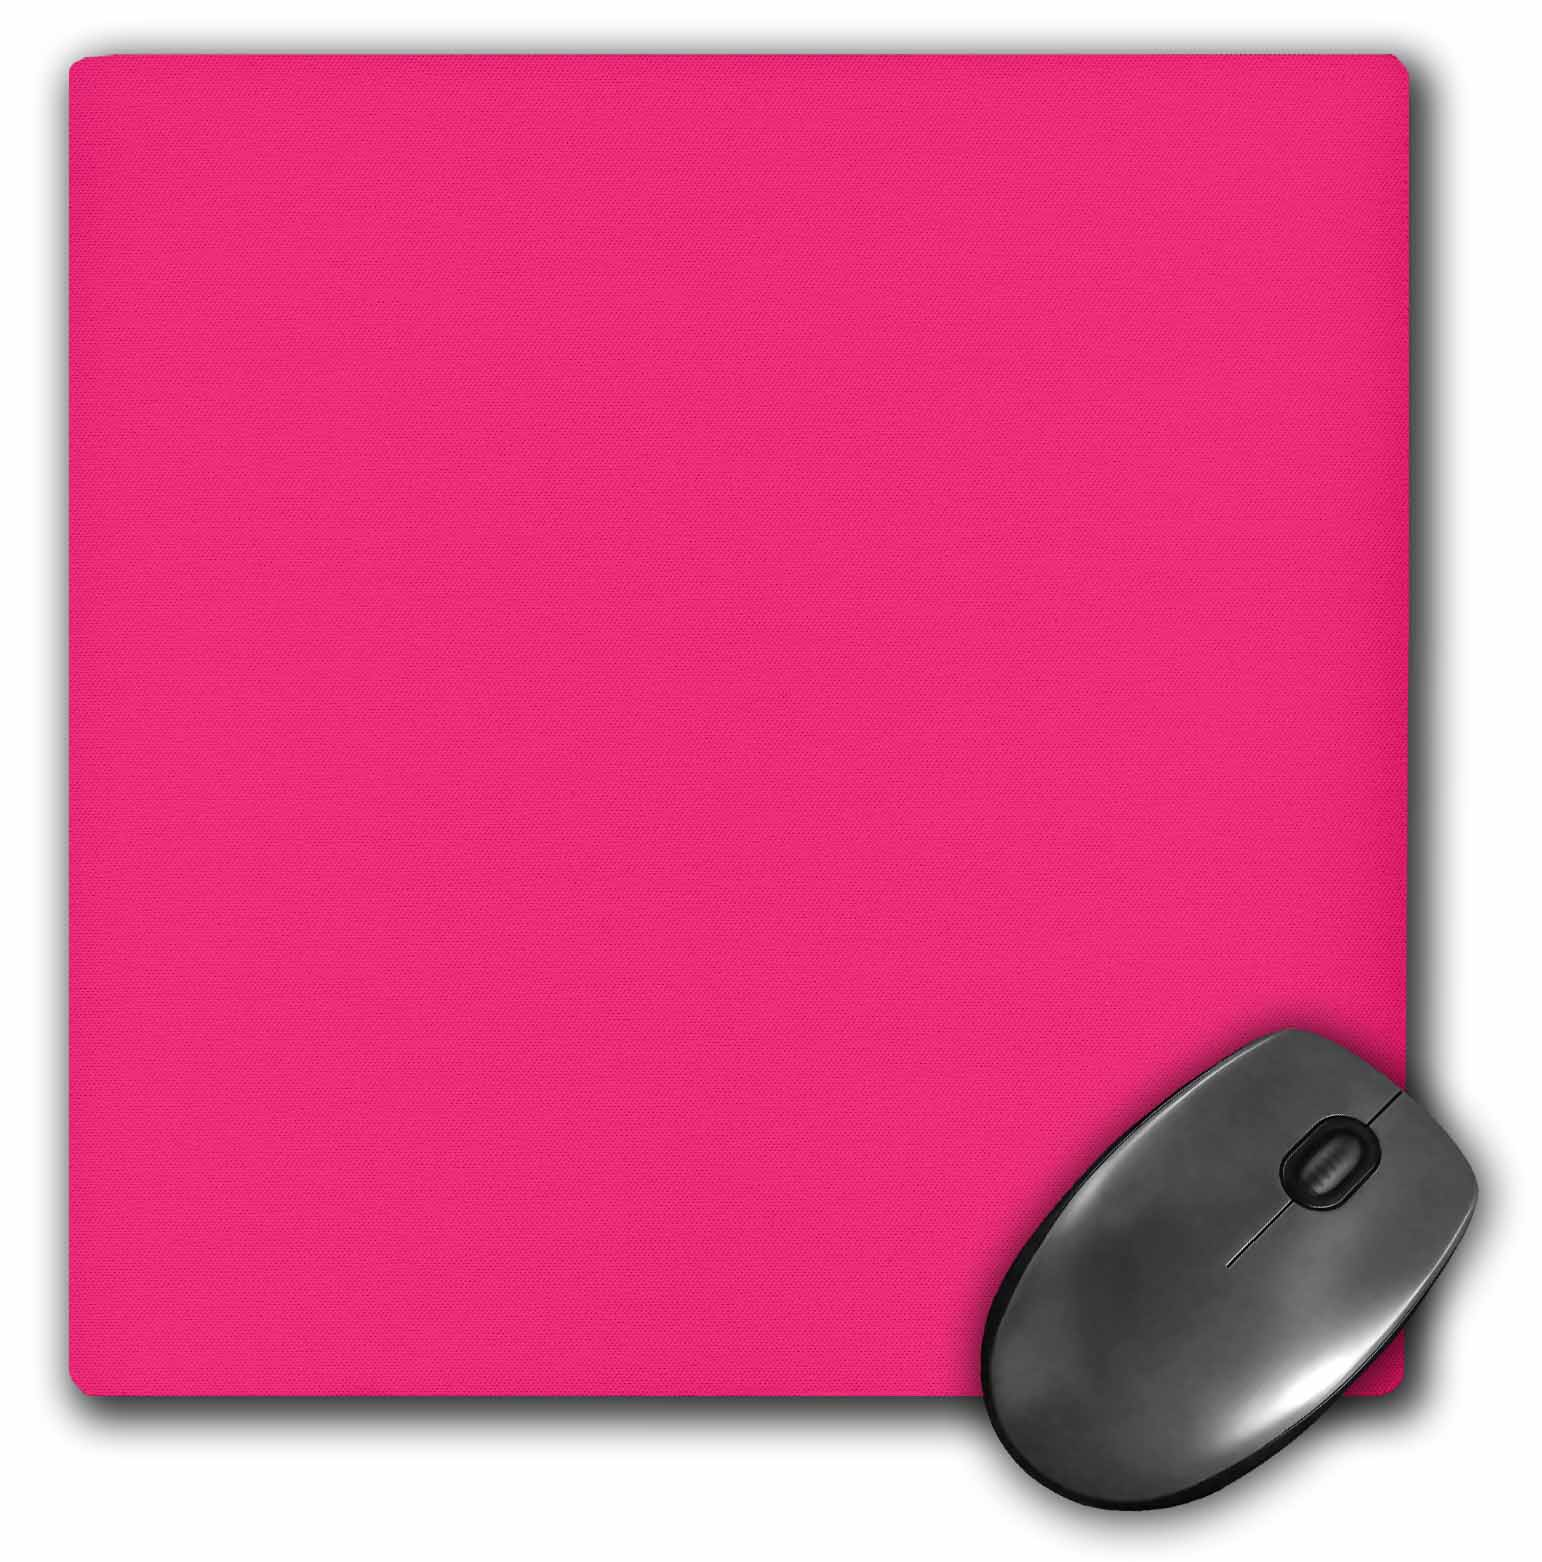 3dRose Hot pink plain simple one solid color girly bright vibrant neon tropical summery summer pink, Mouse... by 3dRose